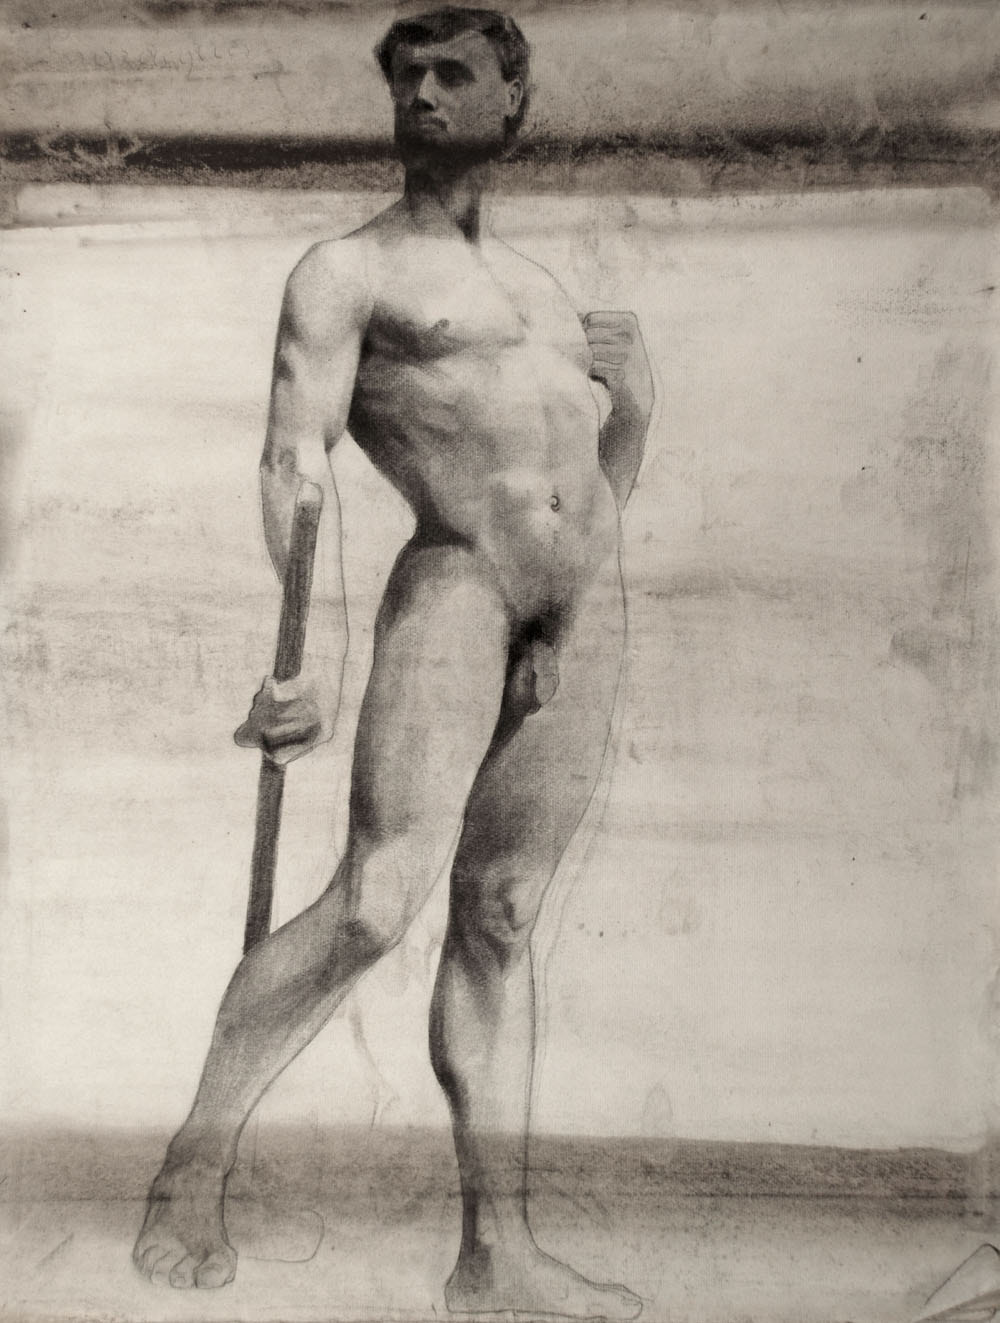 Lucien-Paul Pouzargues drawing standing male nude with rod